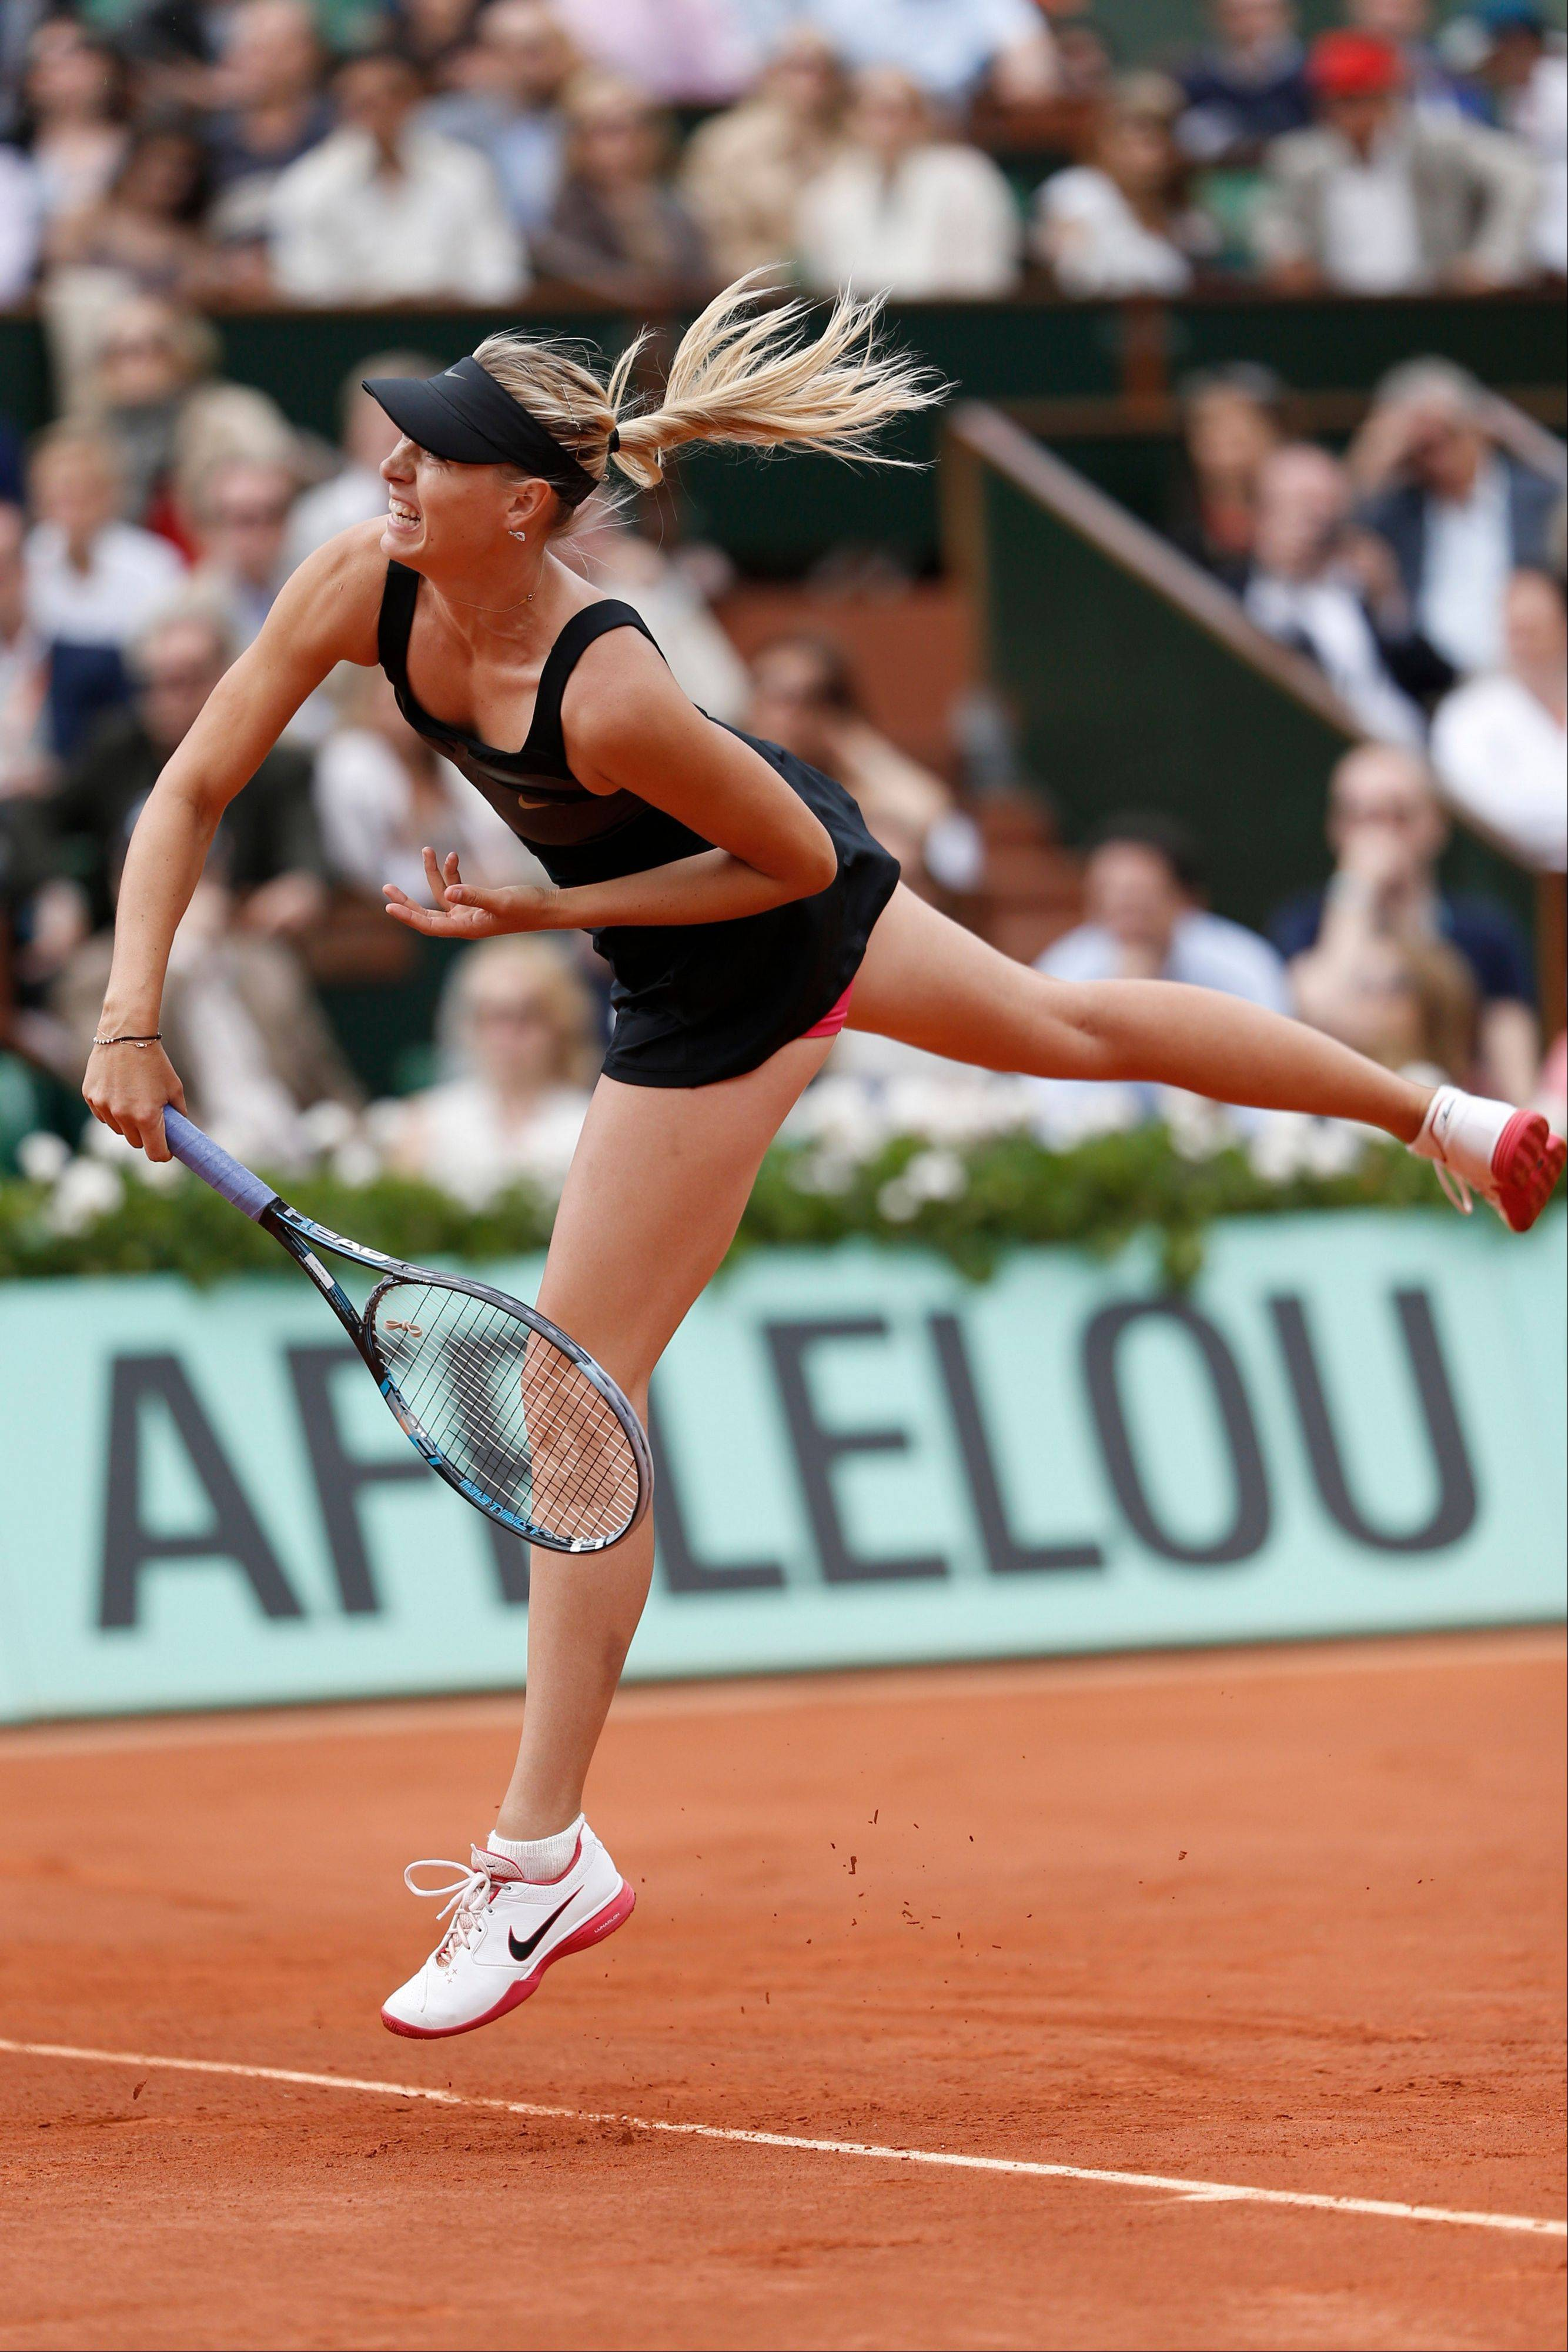 Maria Sharapova serves in the women's final match against Sara Errani.